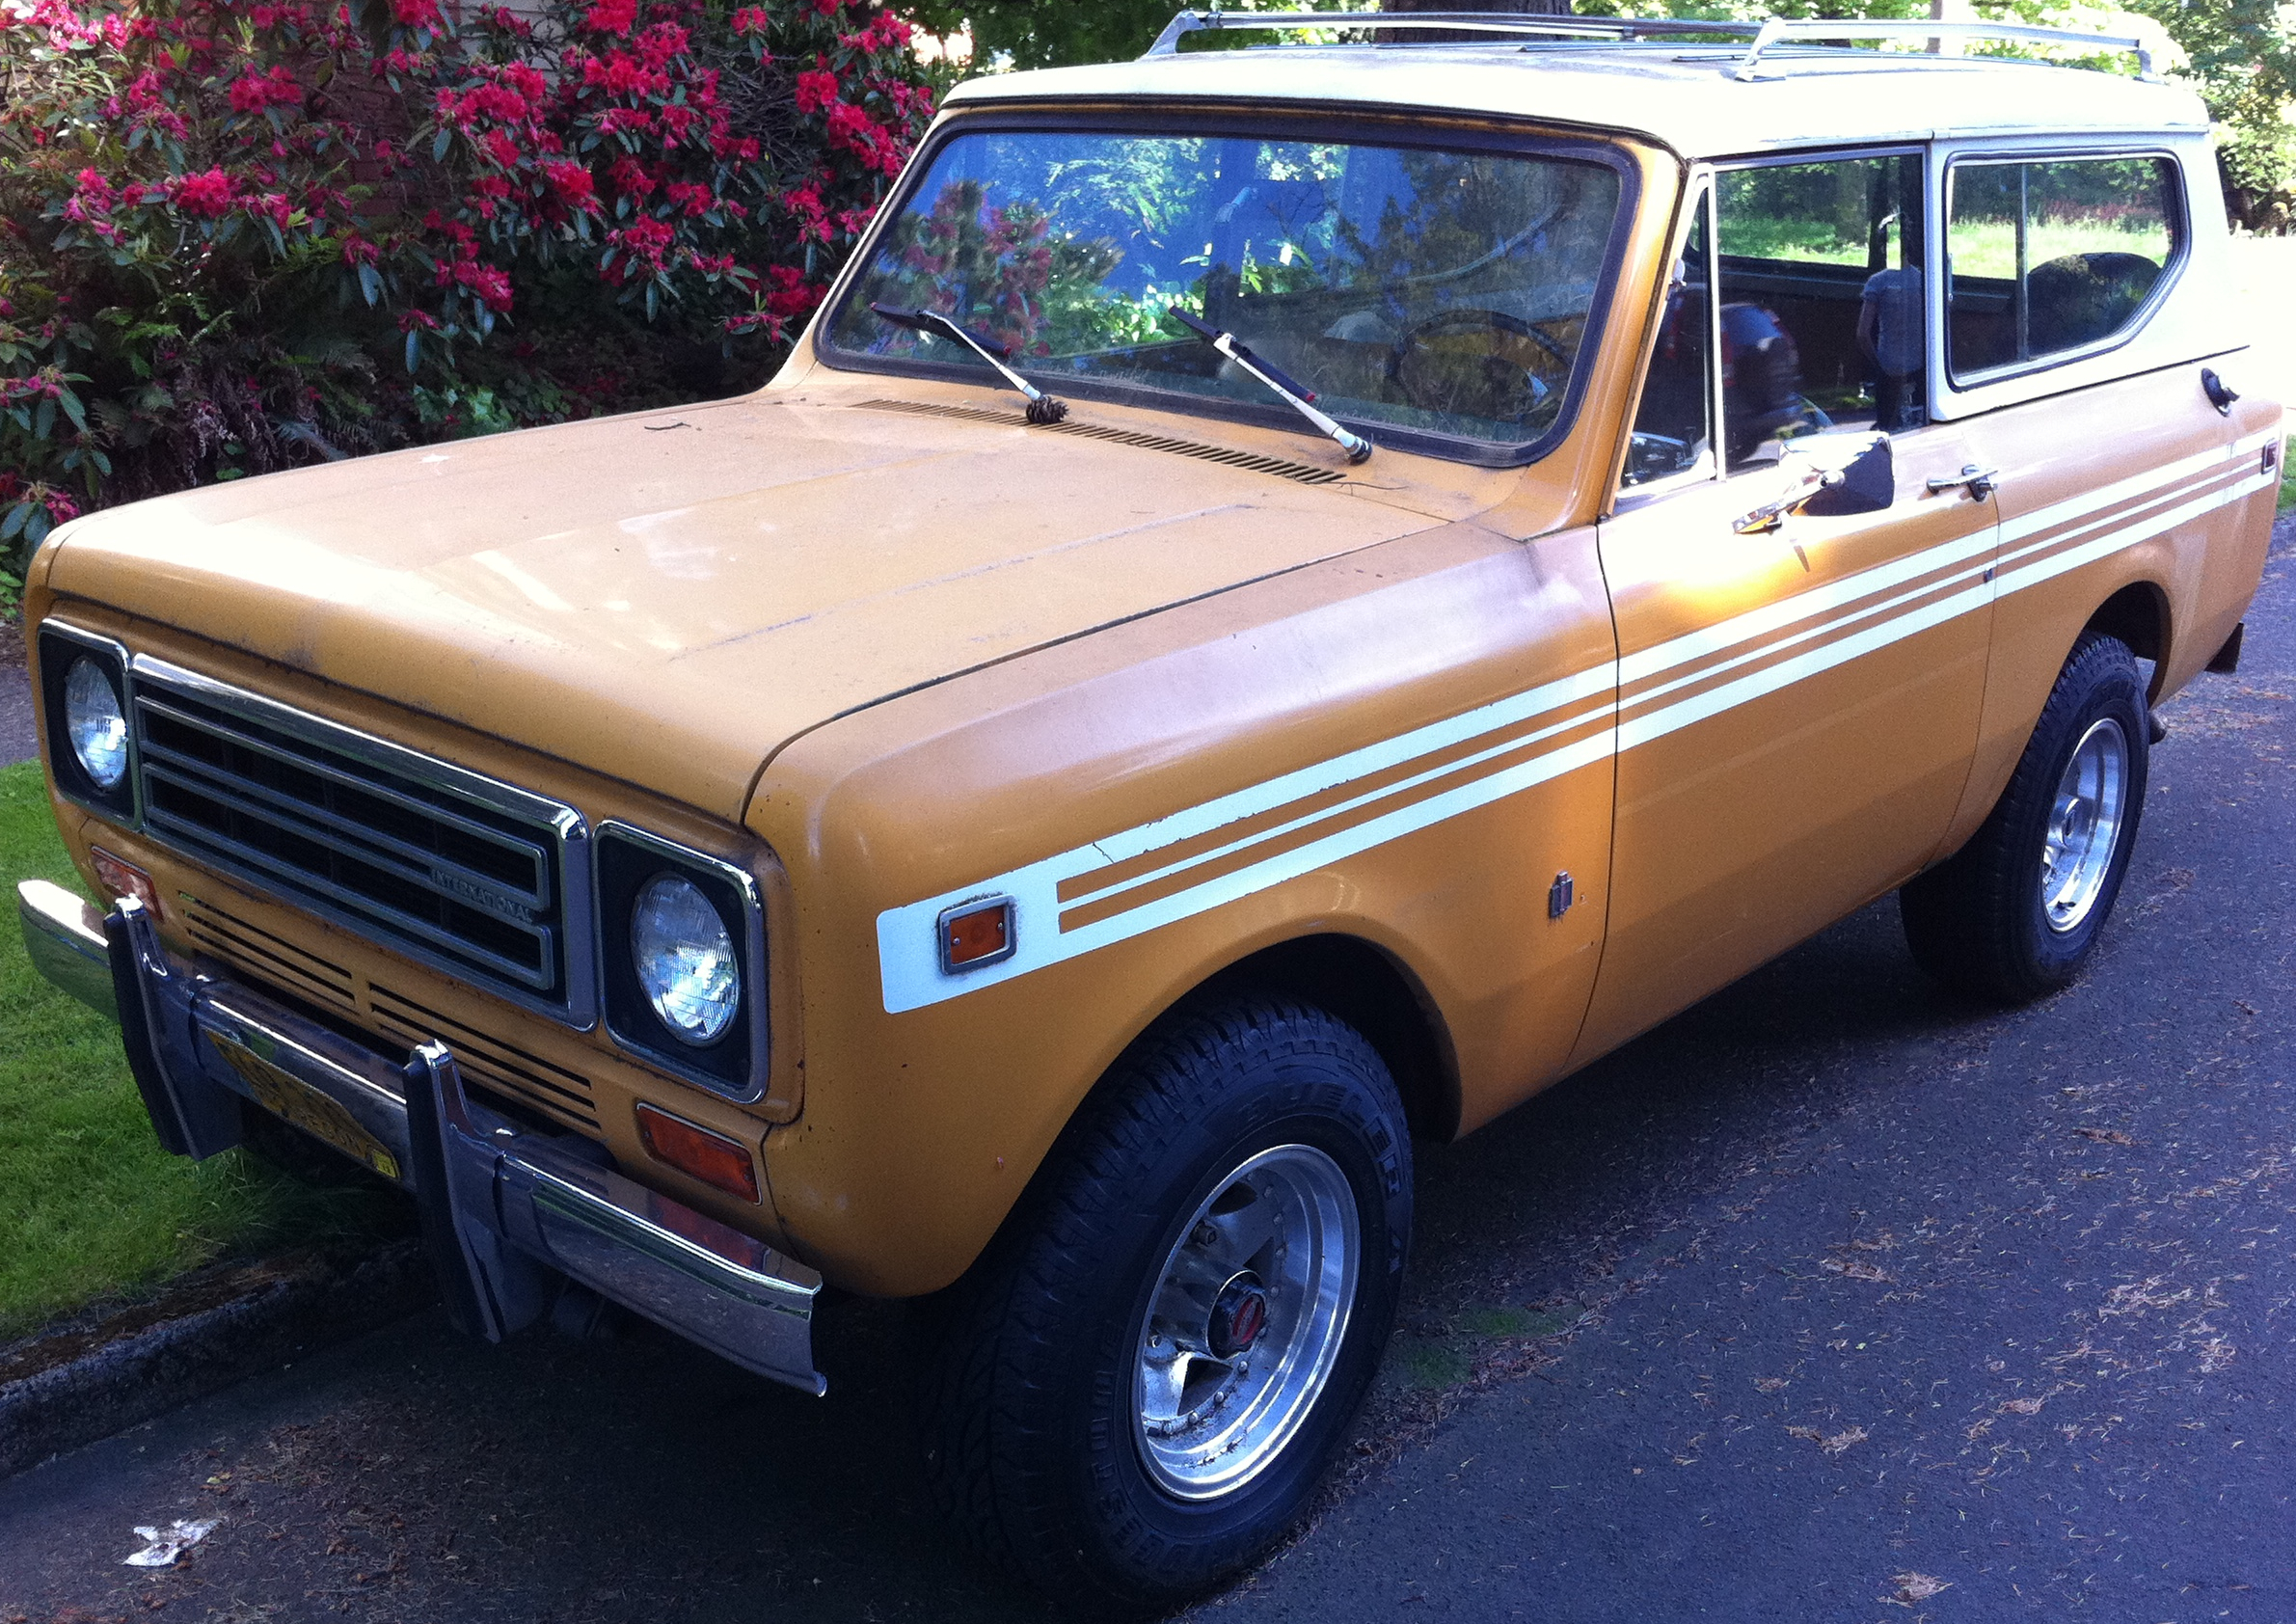 1977 International Harvester